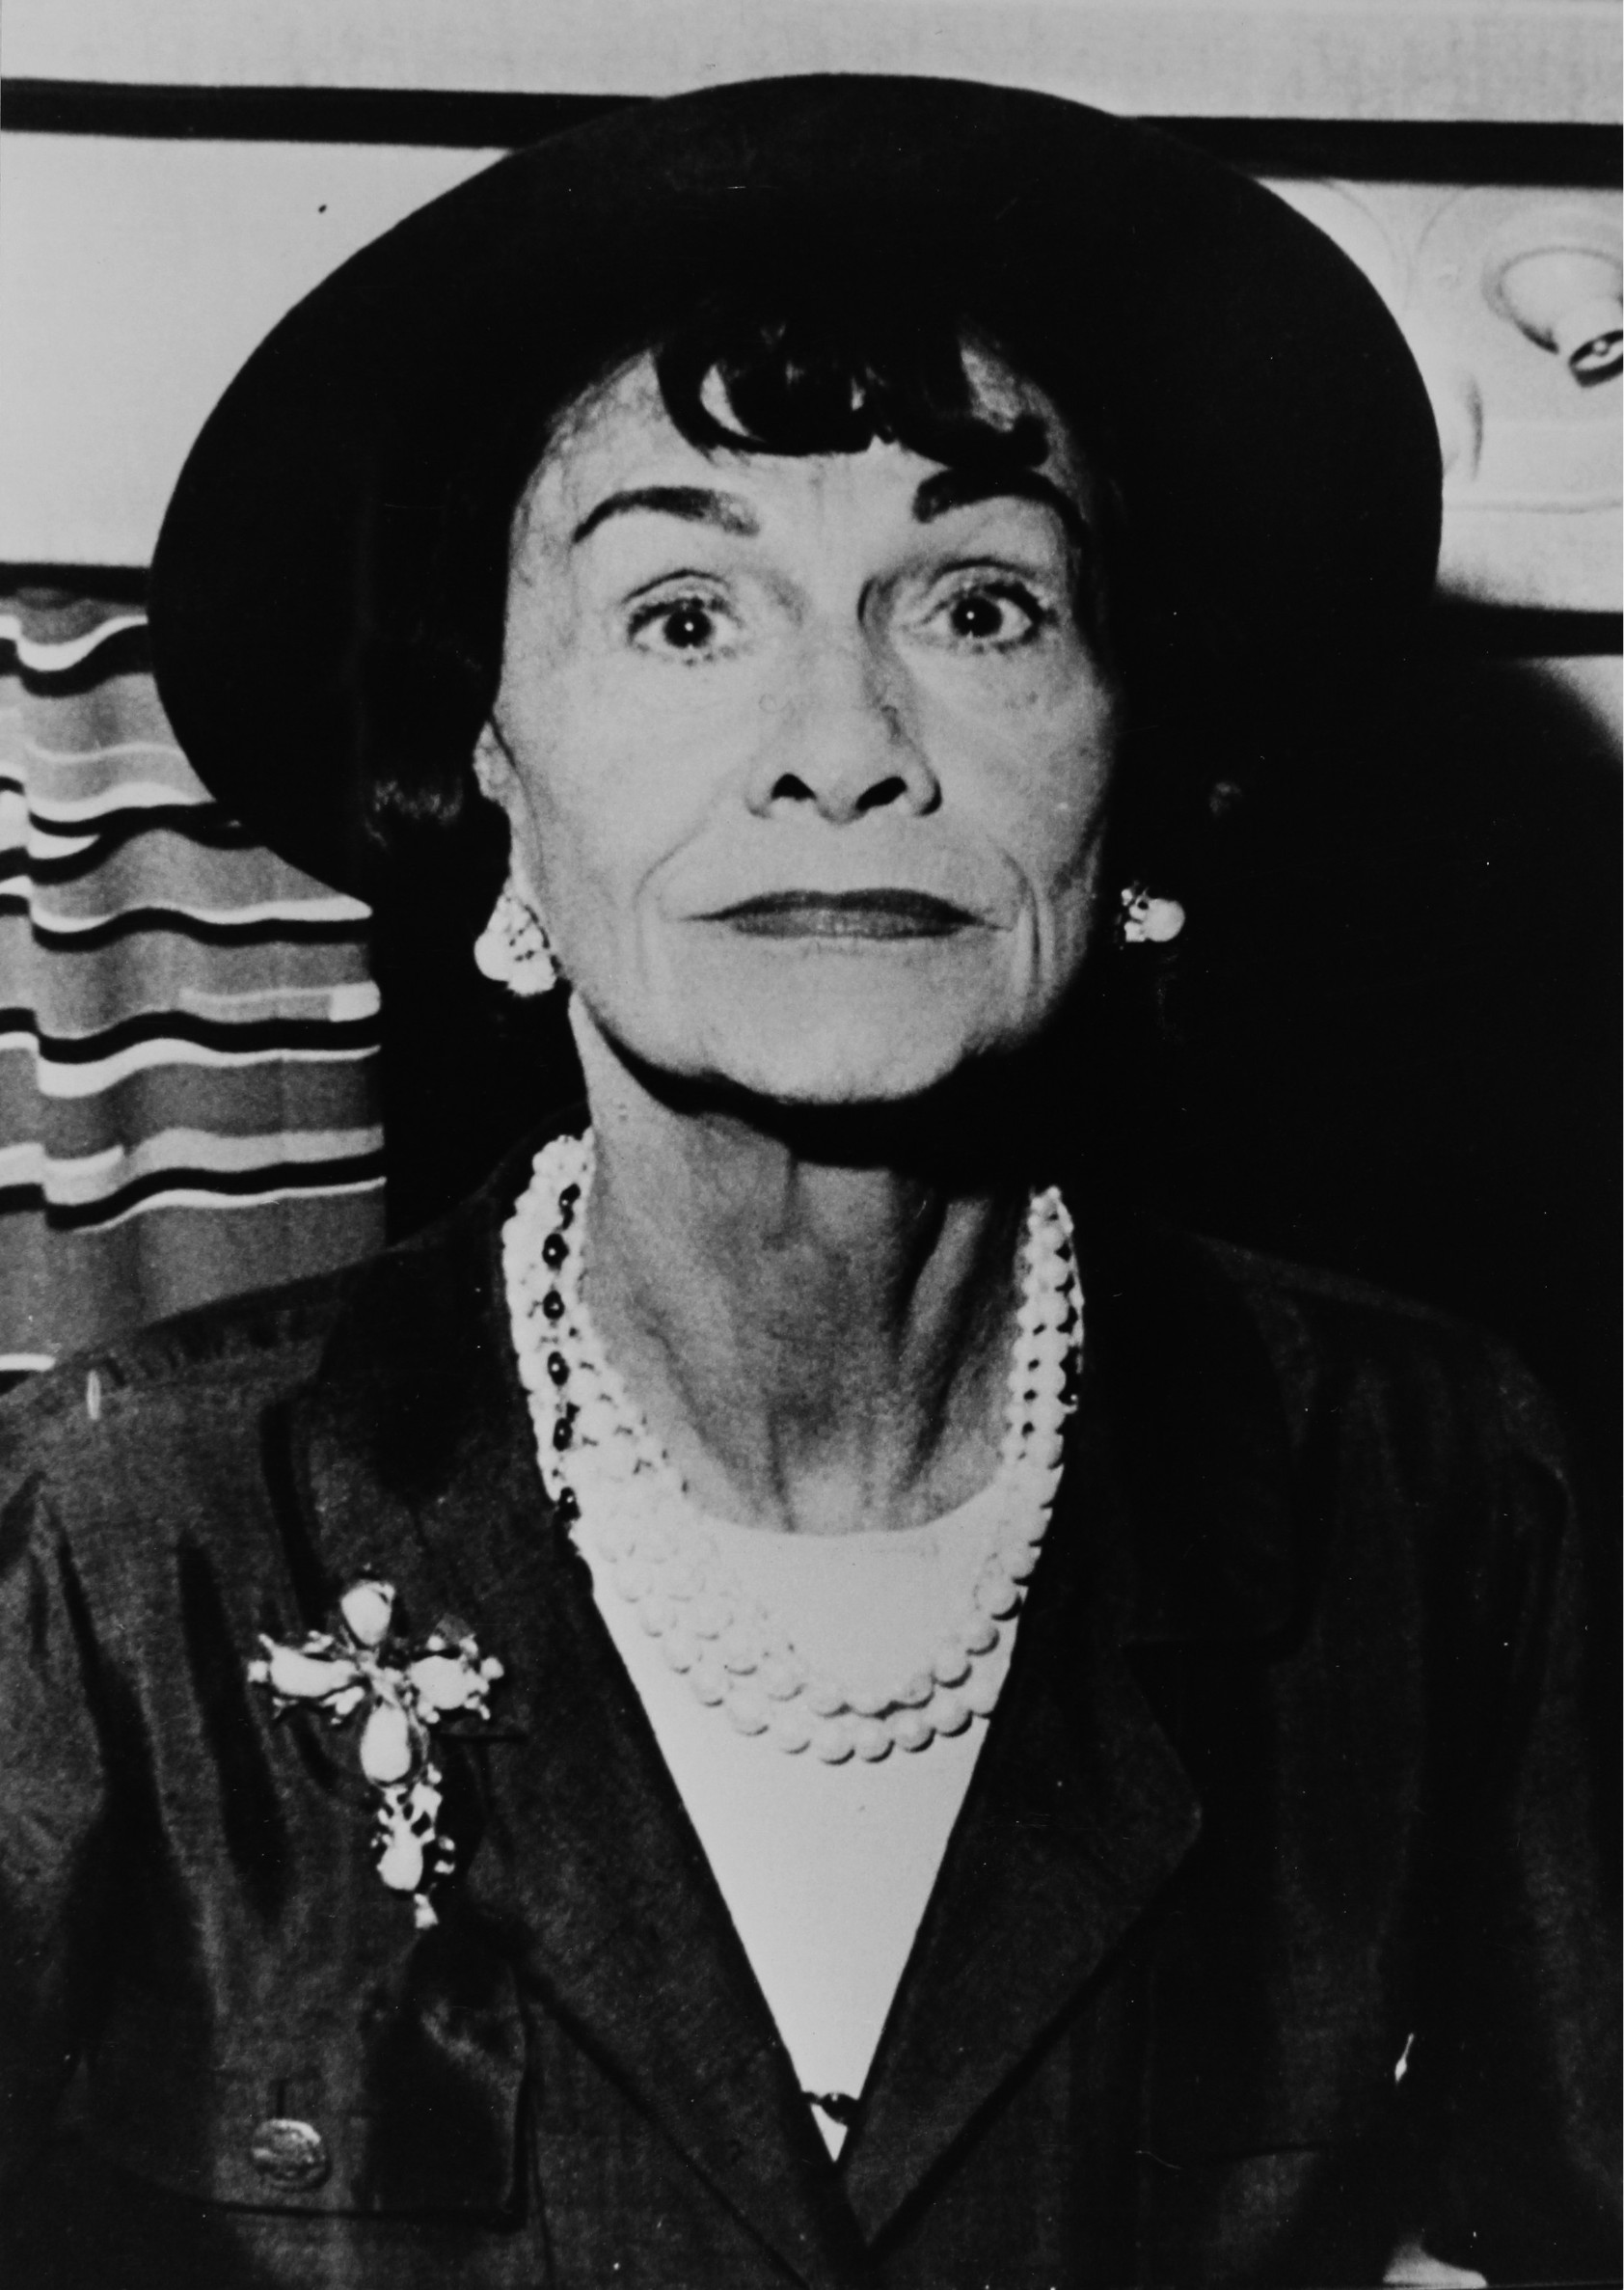 The French fashion designer Coco Chanel. About 1965. Photograph.,Image: 252260999, License: Rights-managed, Restrictions: , Model Release: no, Credit line: - / Imagno / Profimedia